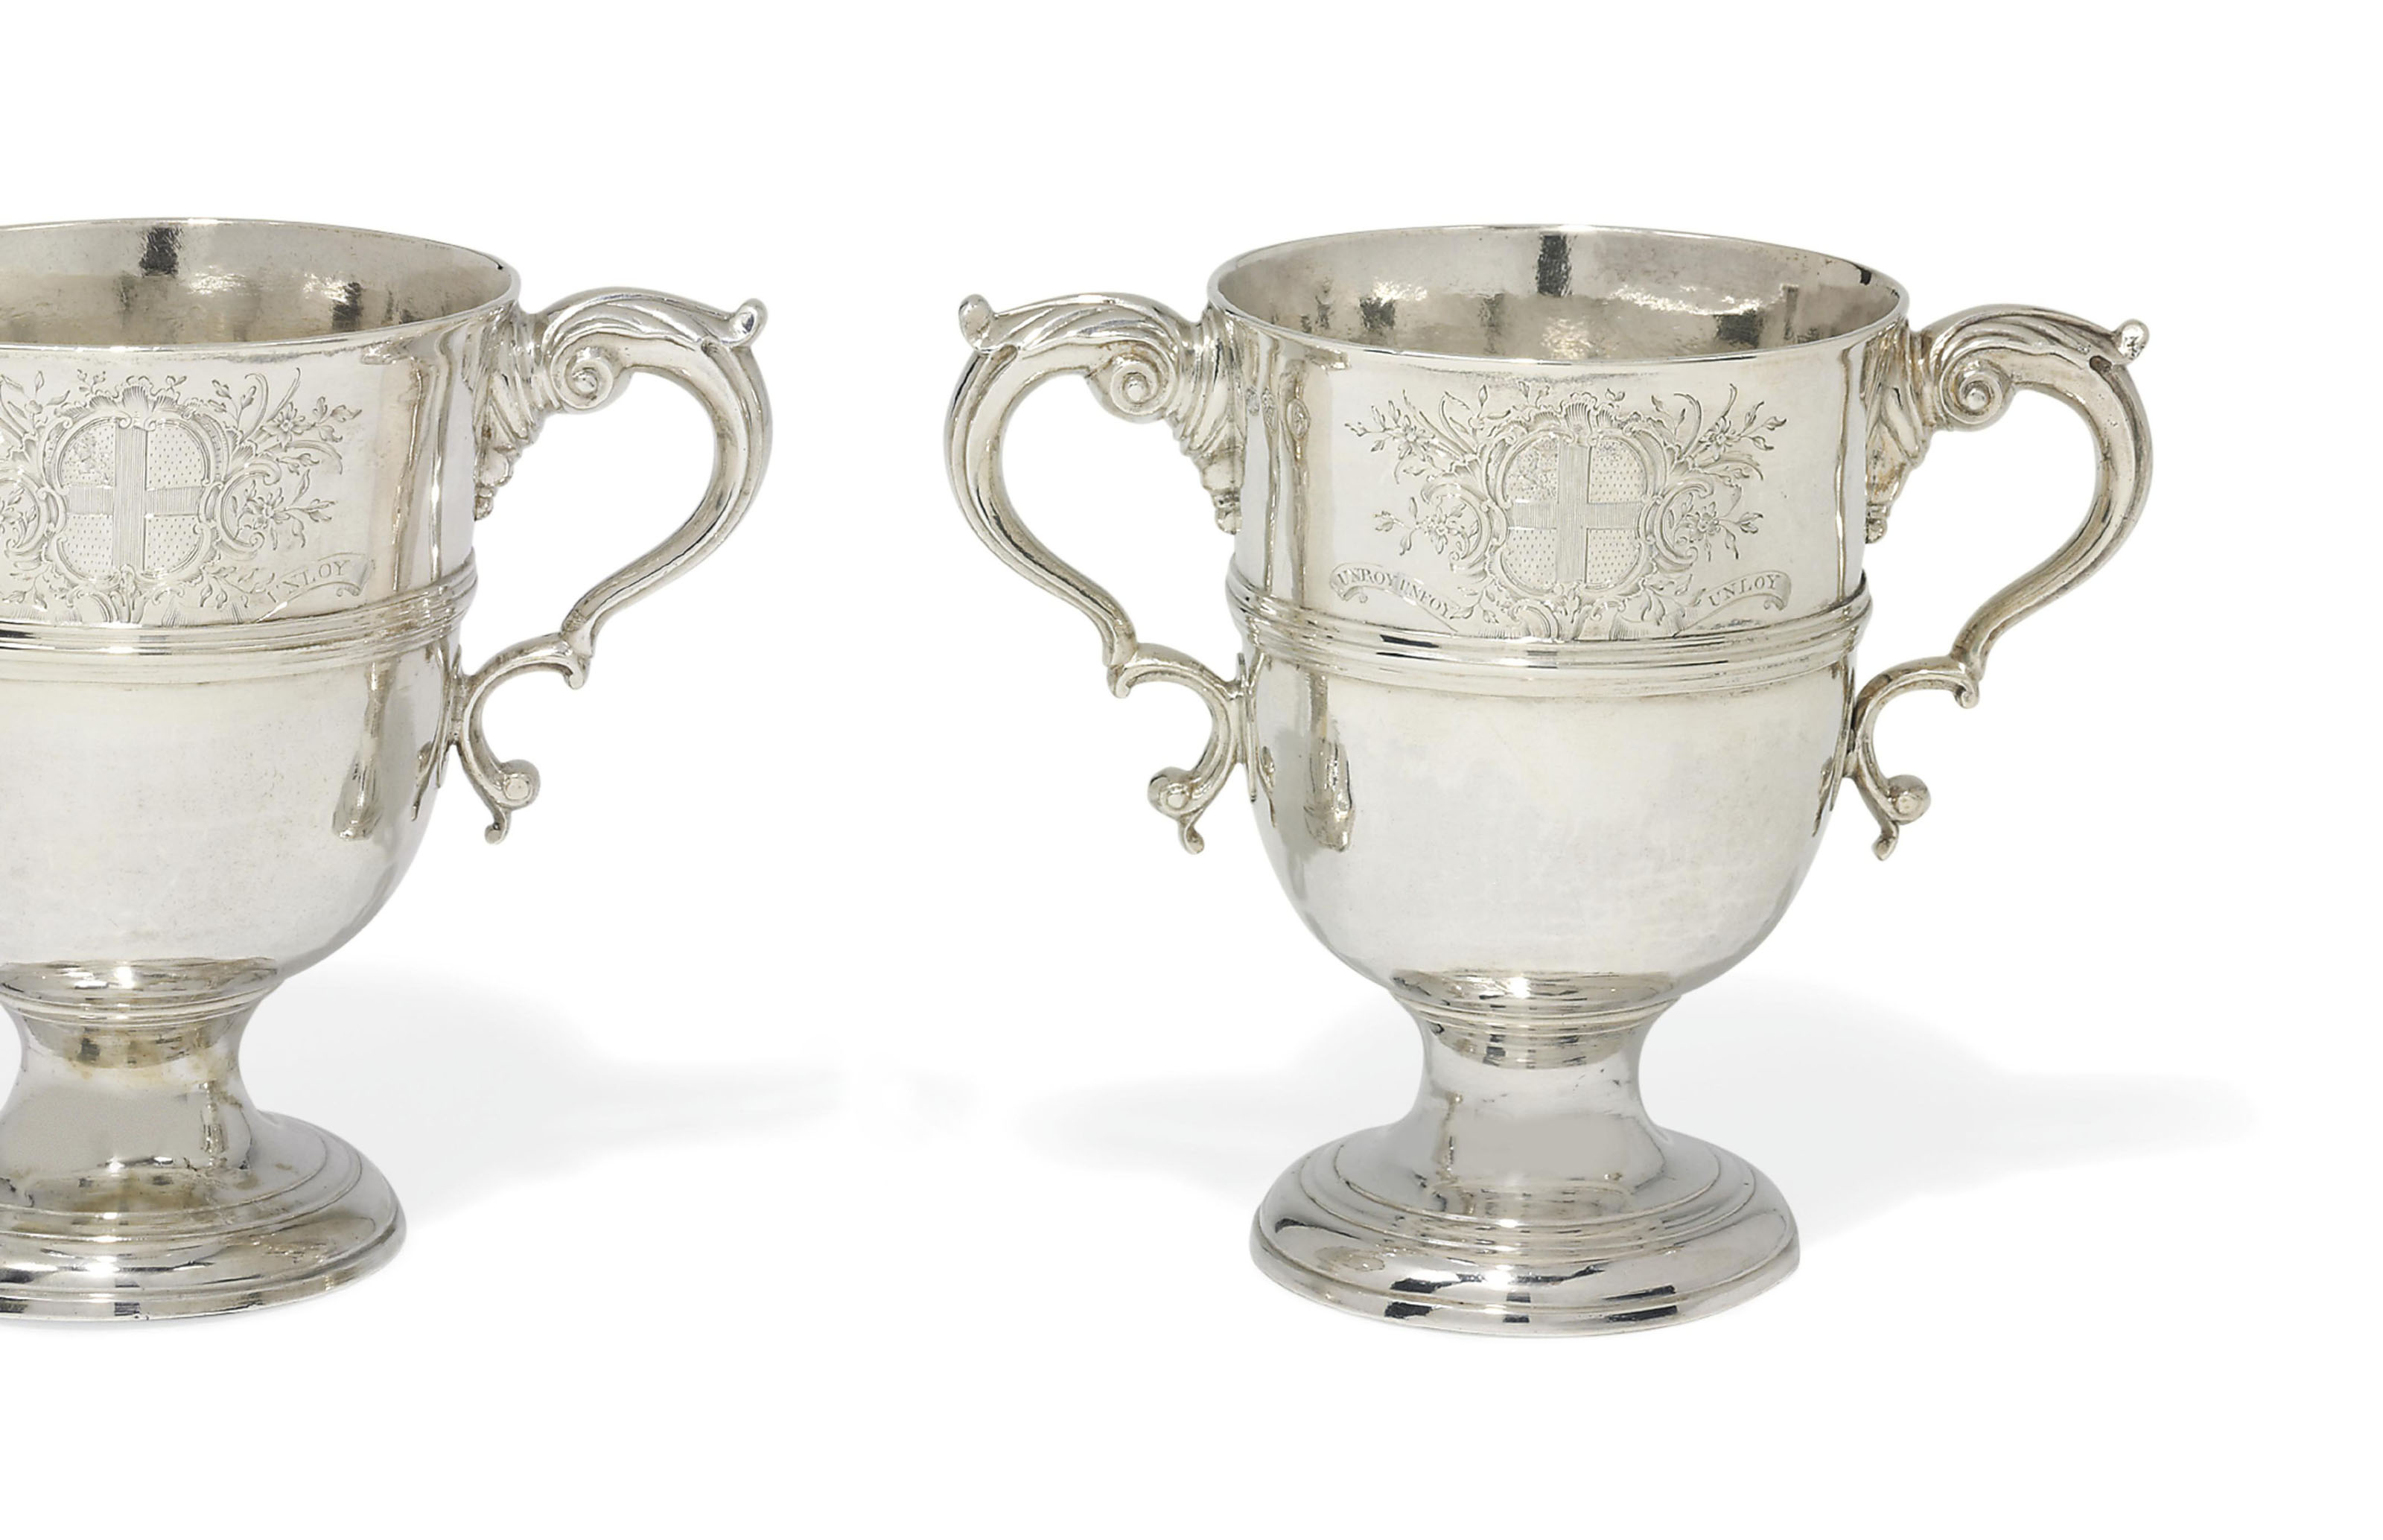 A PAIR OF GEORGE III IRISH SILVER TWO-HANDLED CUPS